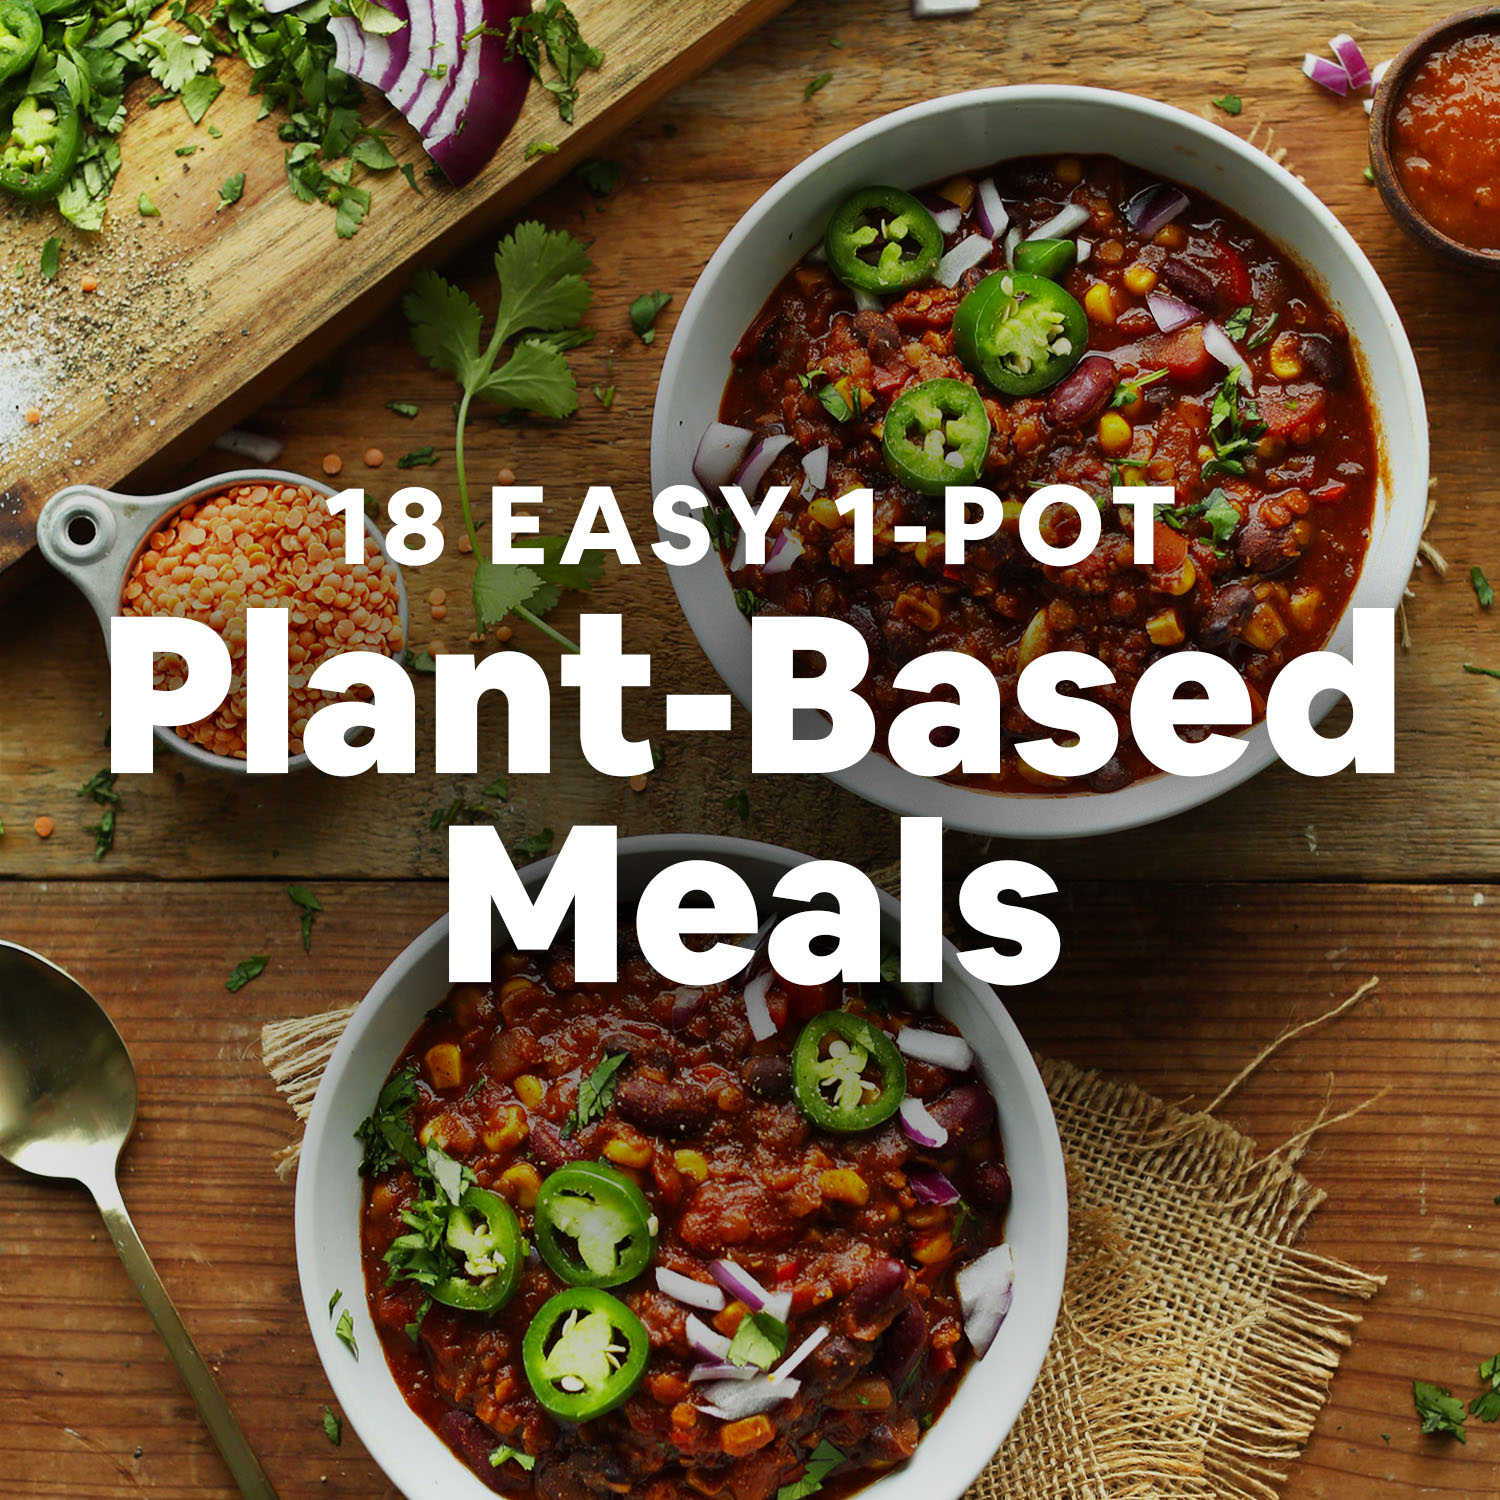 18 EASY 1-Pot Plant-Based Meals